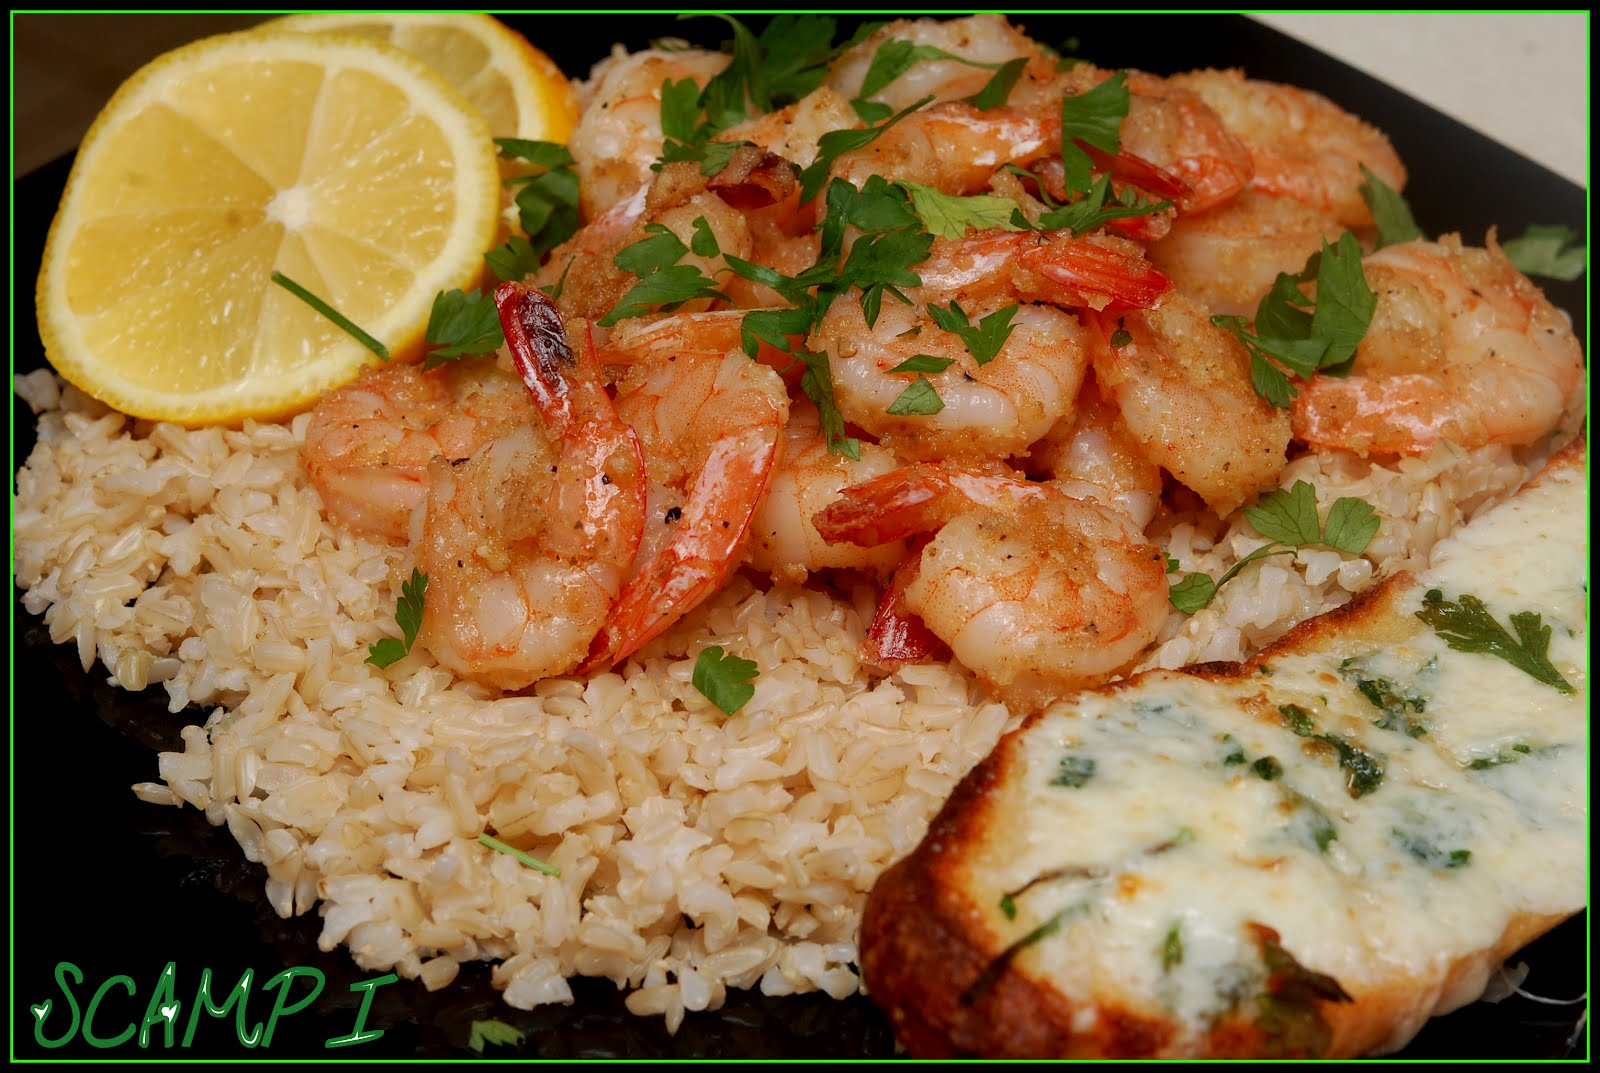 SHRIMP SCAMPI SERVED OVER BROWN RICE WITH GF FRENCH GARLIC BREAD ...